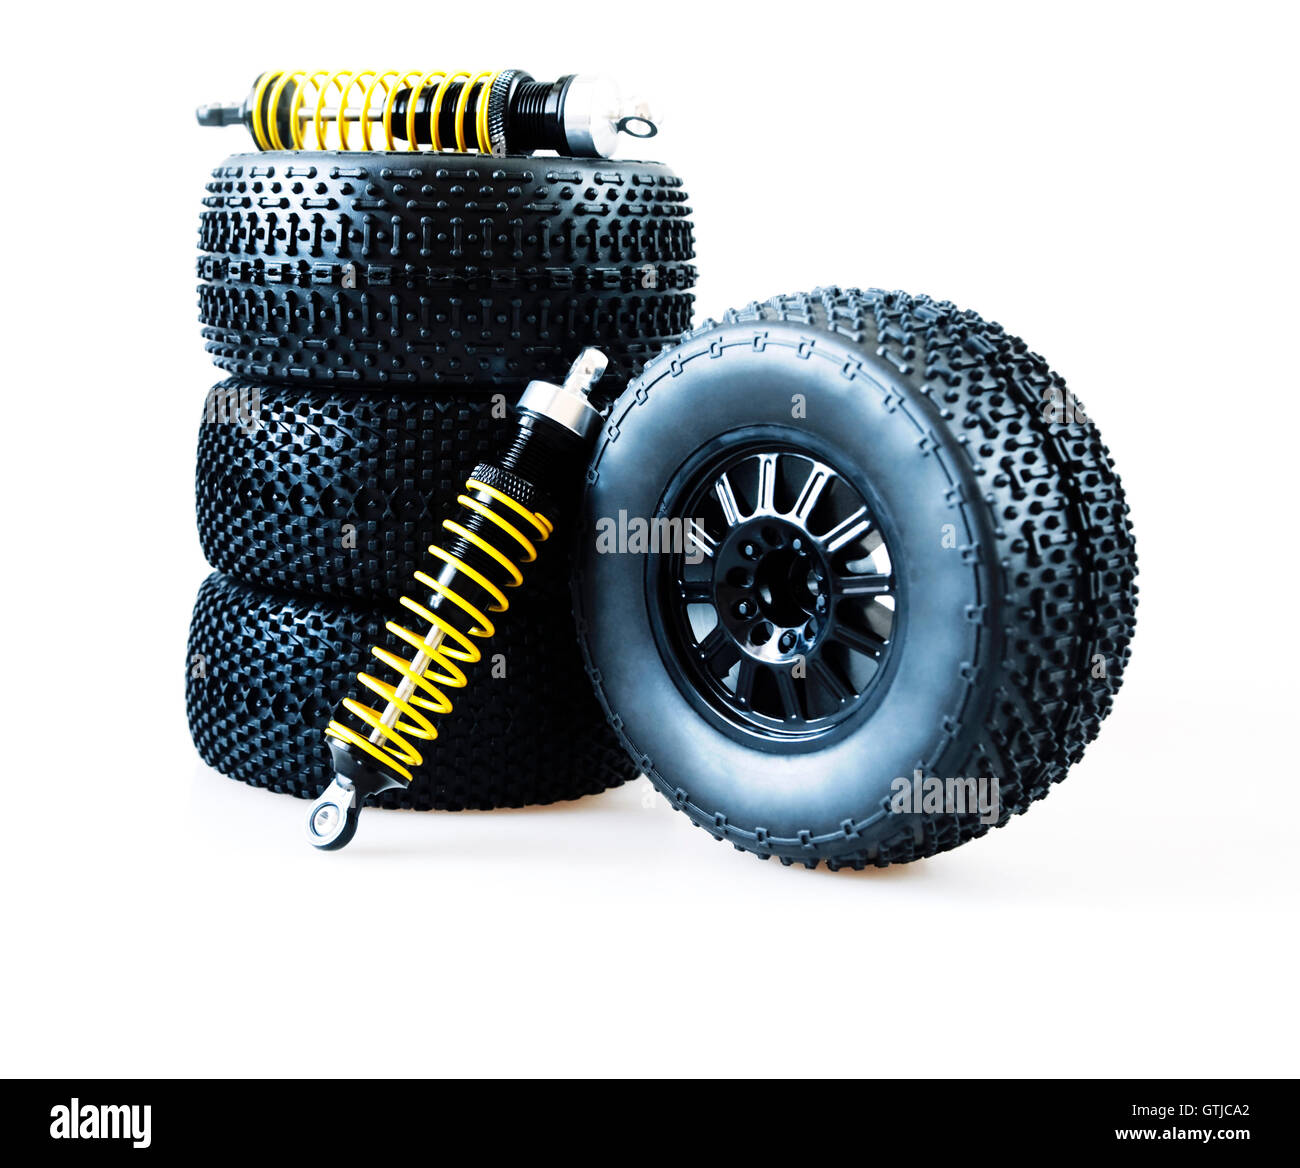 : wheels and shock absorbers on a white background - Stock Image